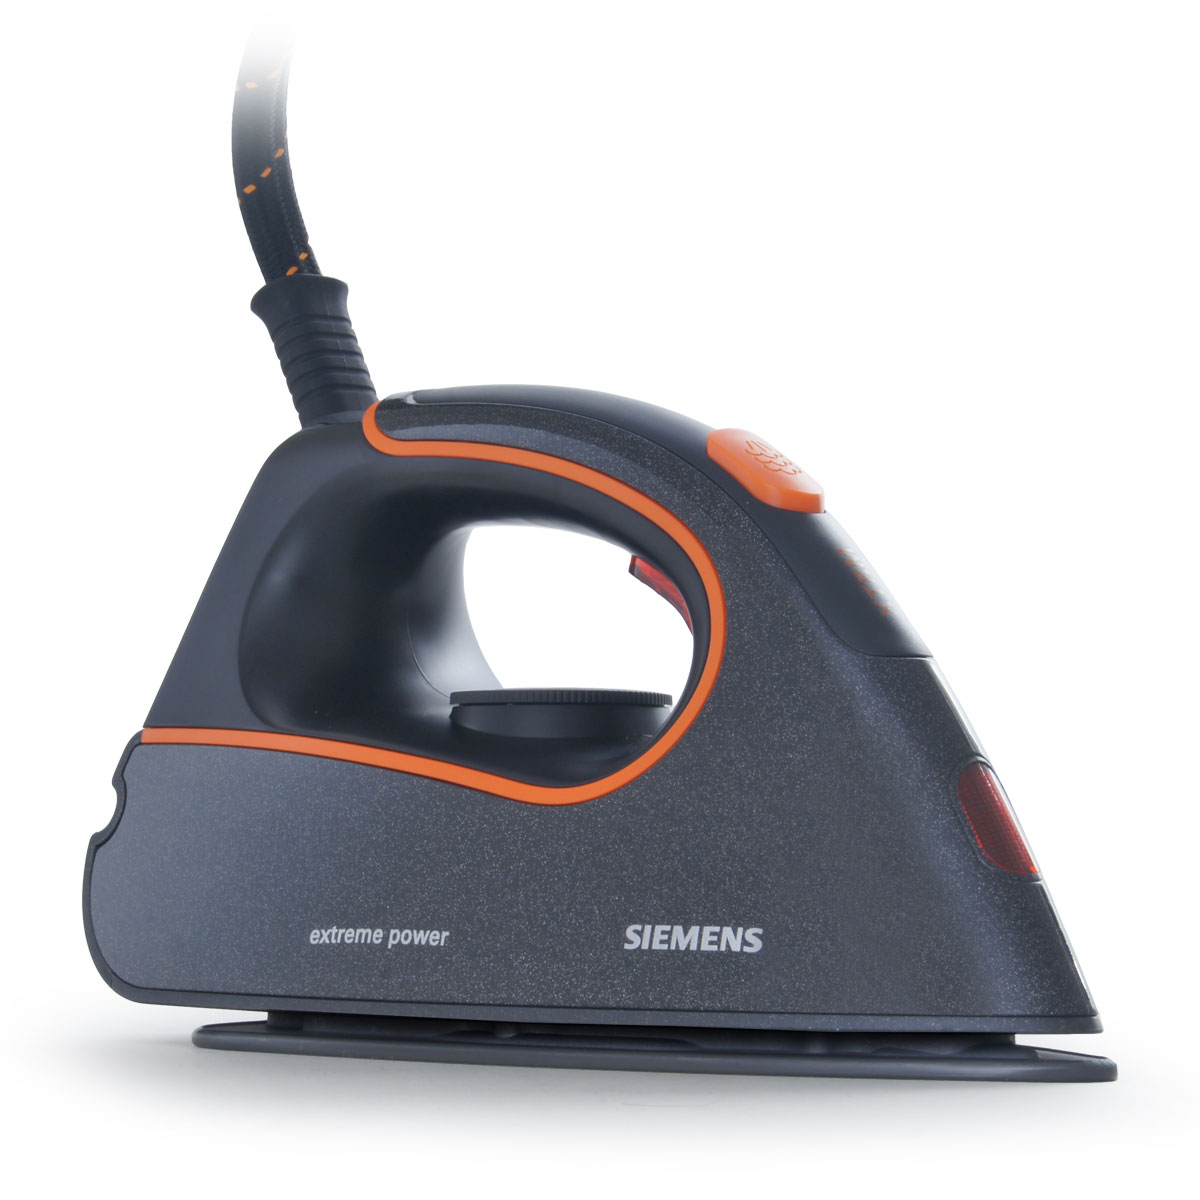 Steam Iron TS 20 designed by industrial designers d+e for Bosch Siemens Hausgeräte